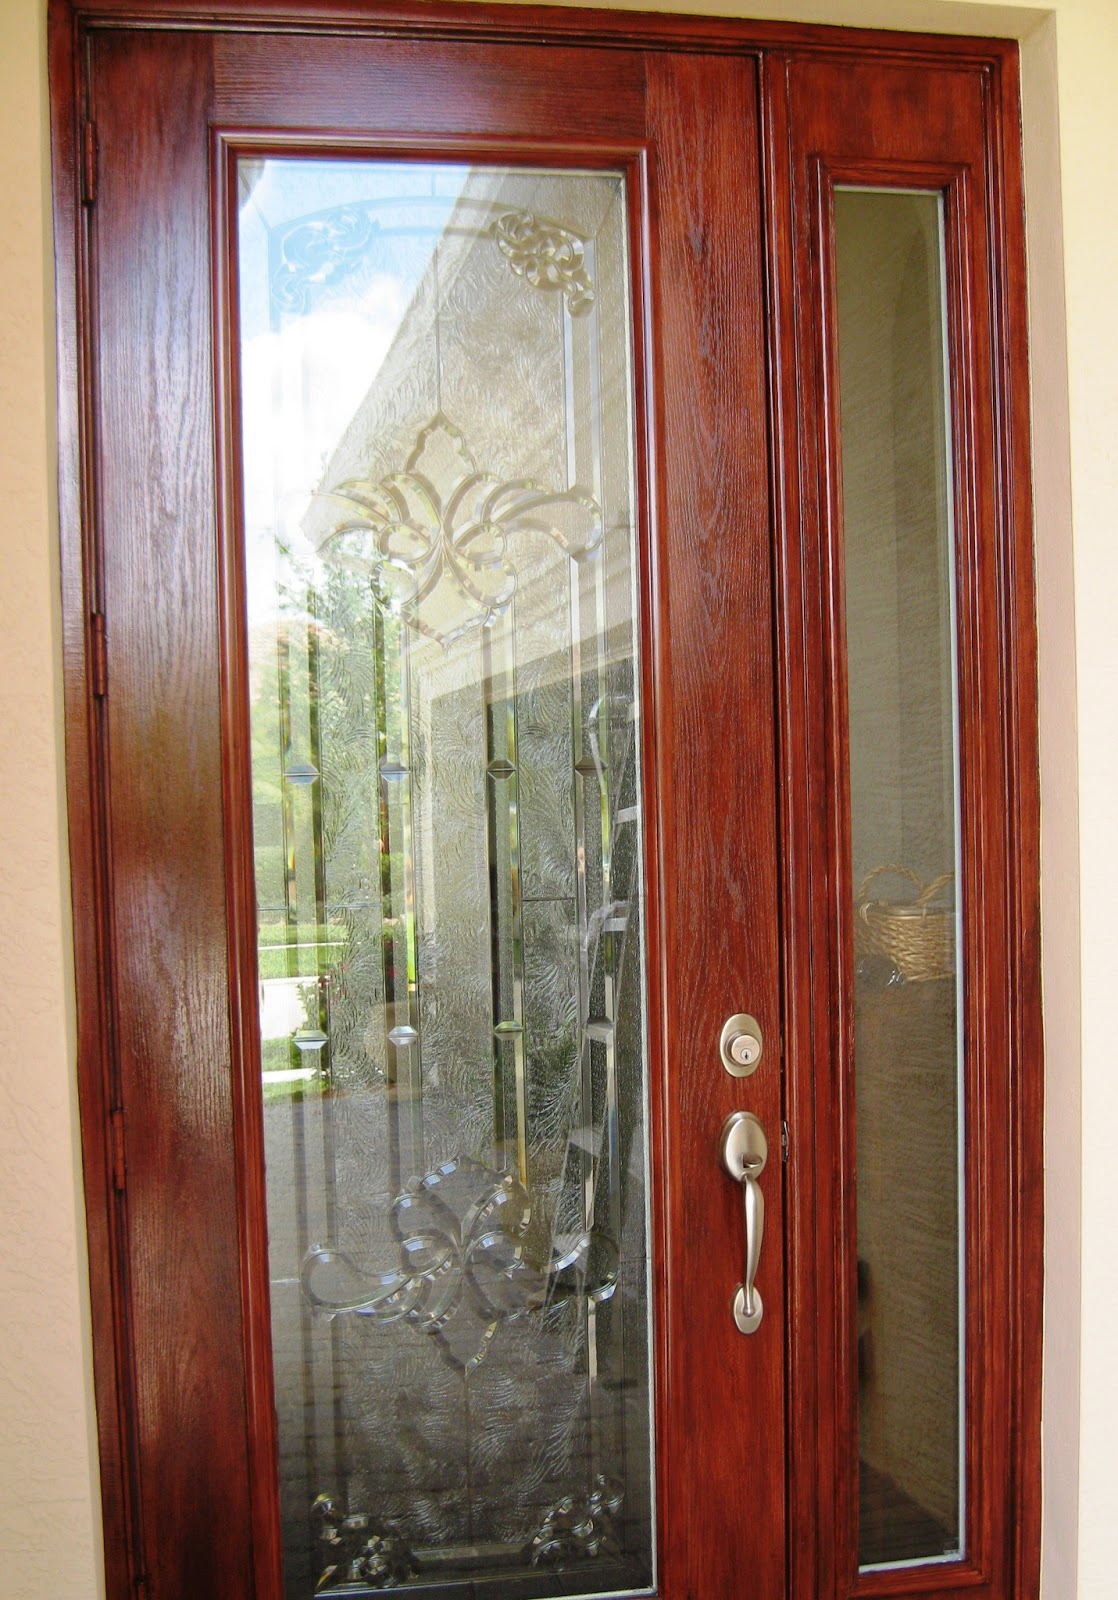 1600 #773223 Array Of Color Inc: Gel Stained Door image Stainable Fiberglass Entry Doors 40231118